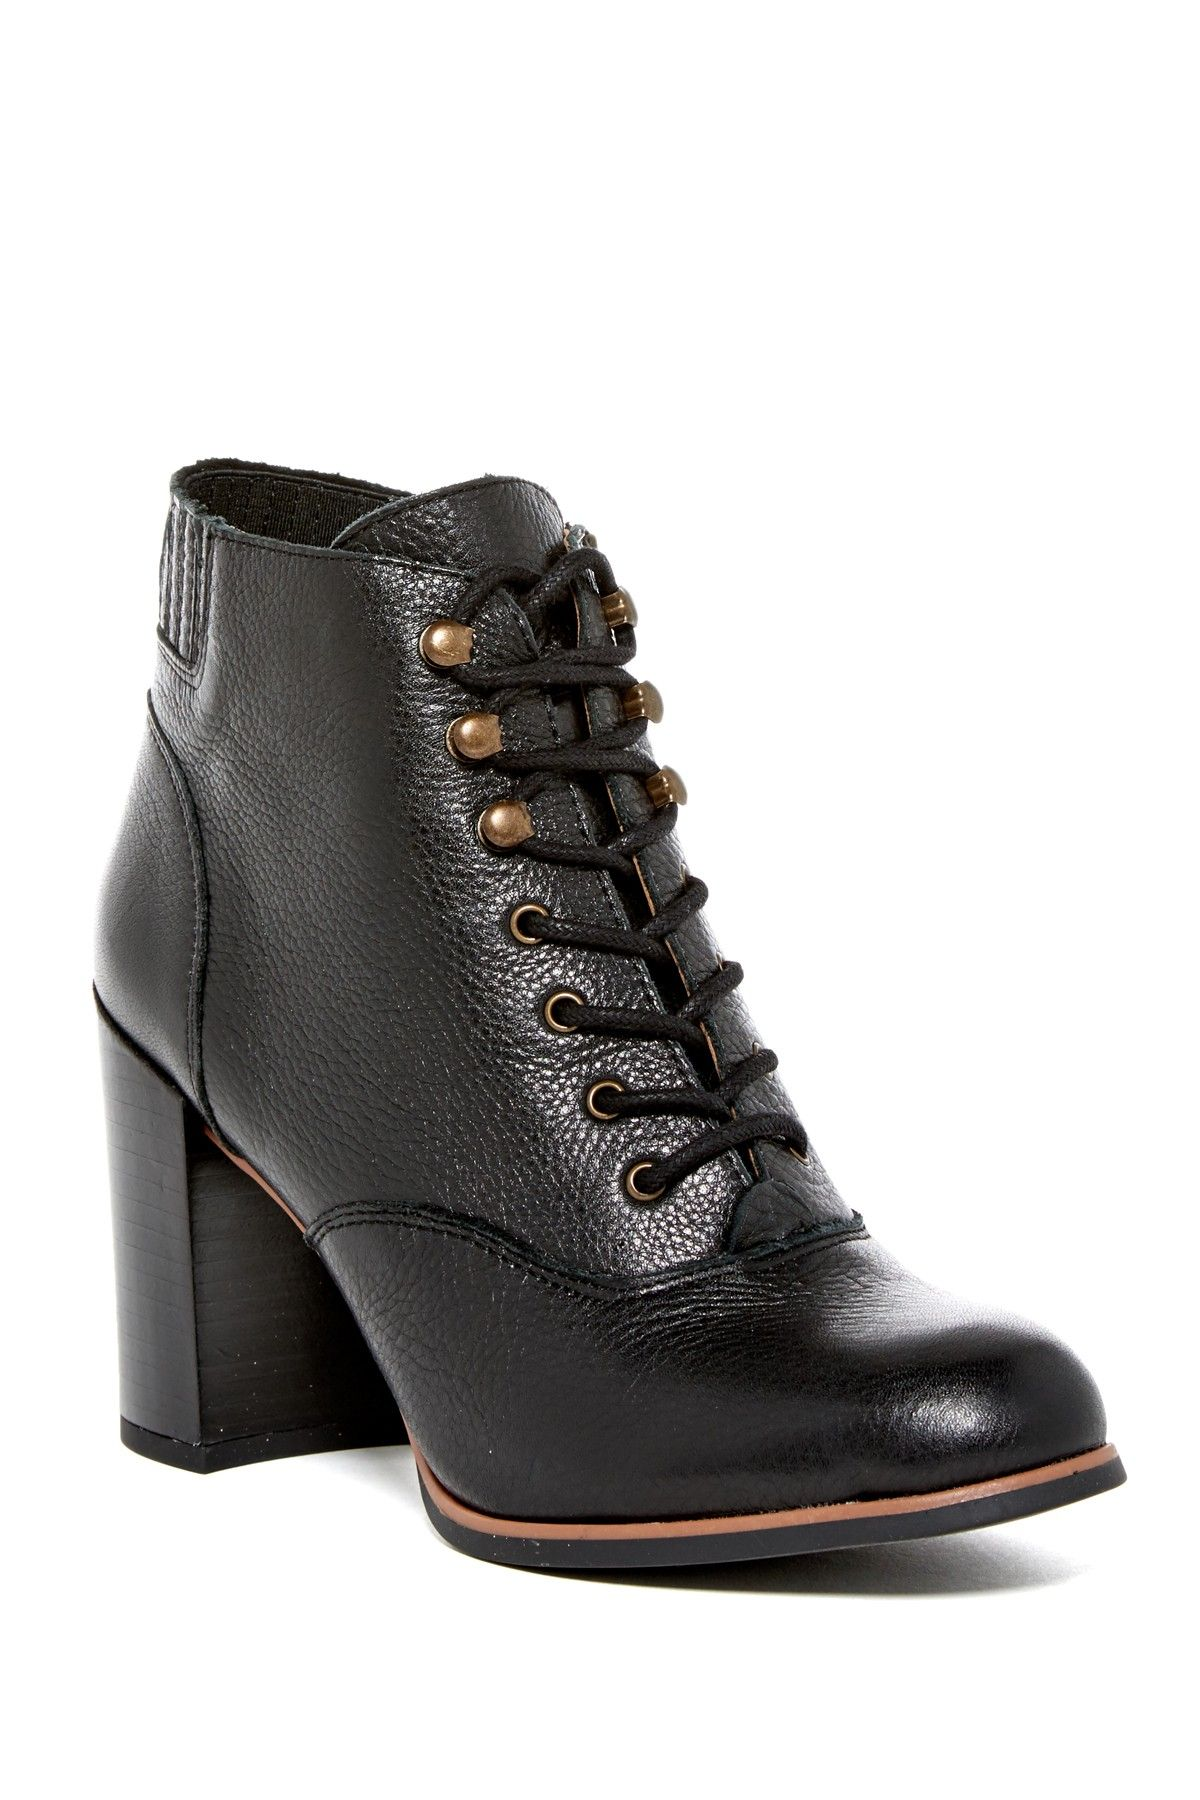 Really FOOTWEAR - Lace-up shoes Ex Buy Cheap Amazing Price JExywZ